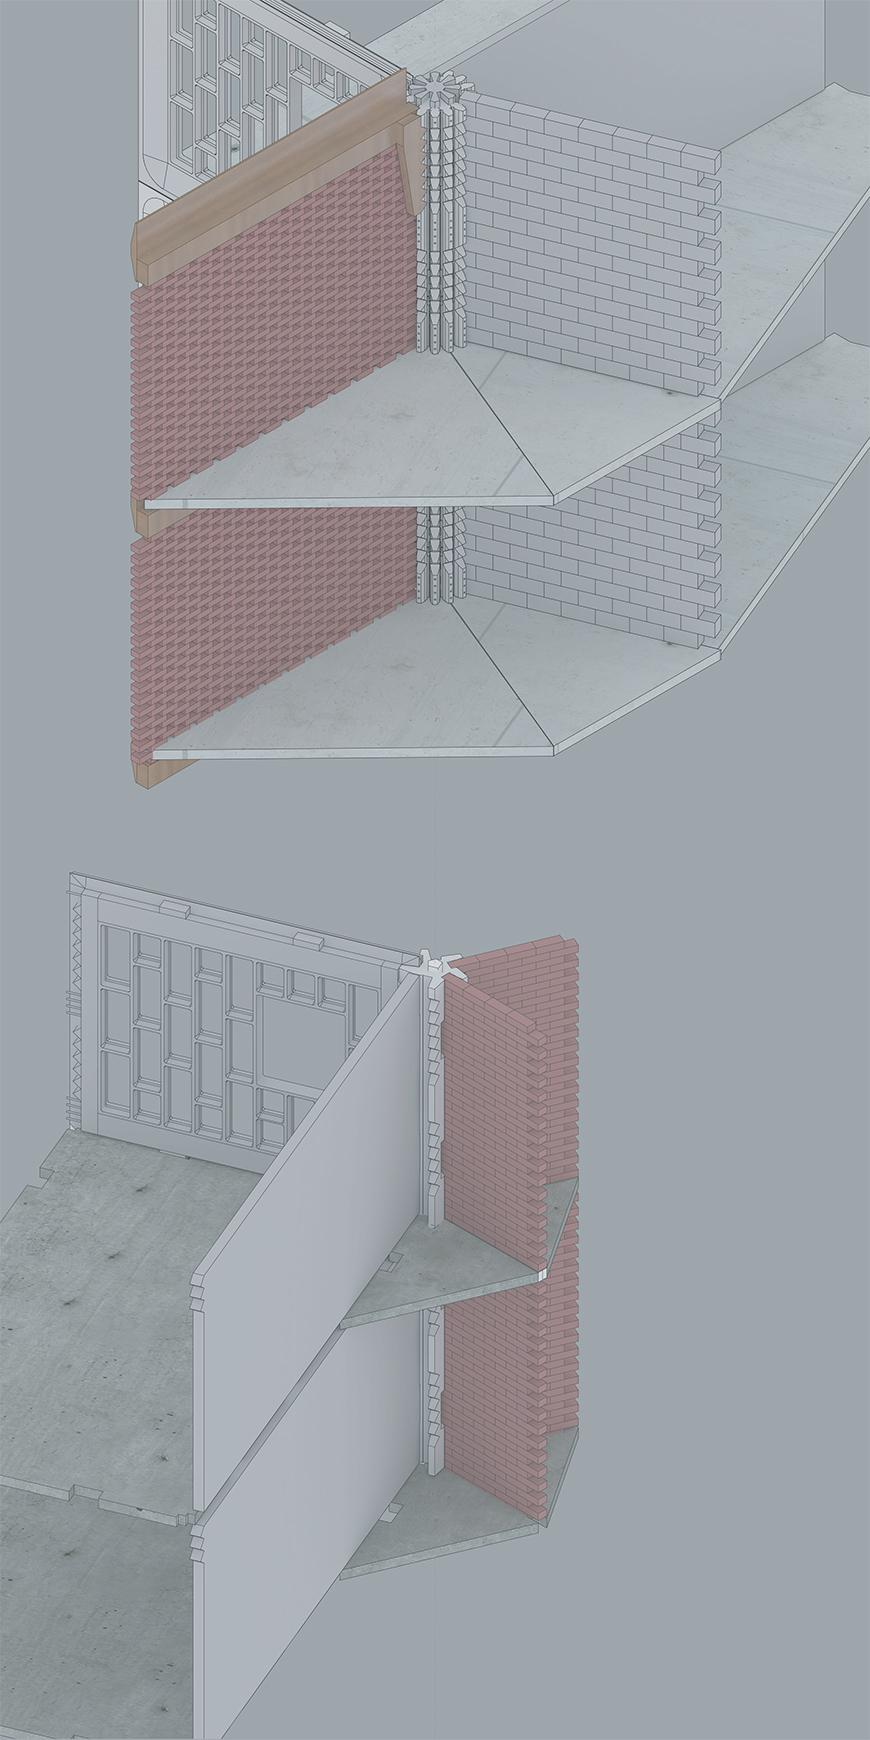 Axonometric drawing of proposed column and possible combinations with standardized panels, brick, and concrete walls.